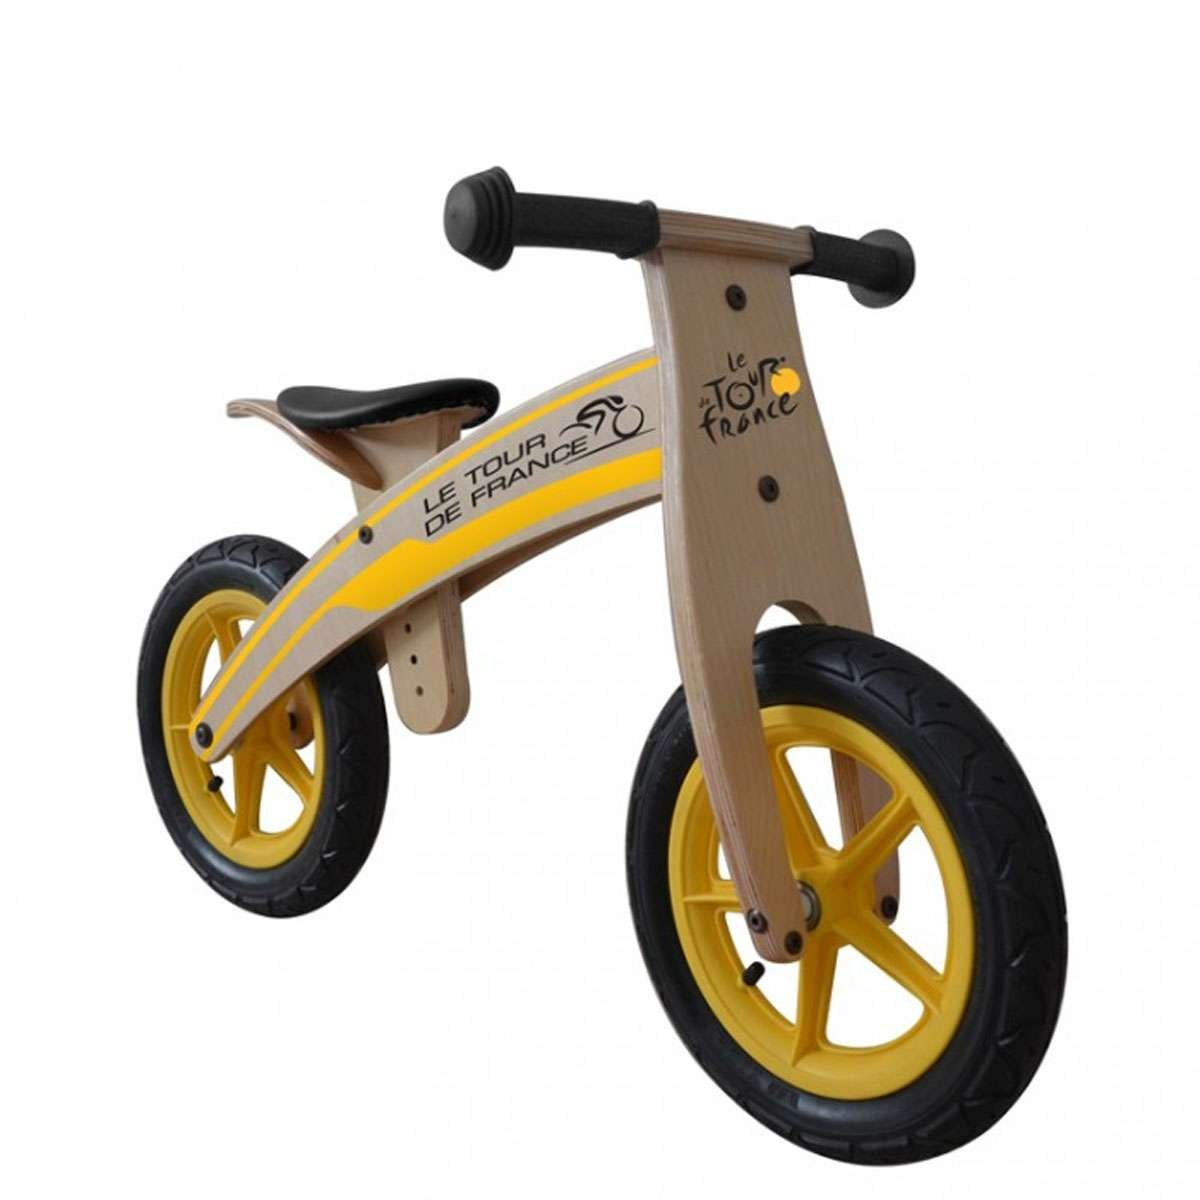 CDM product Tour de France Wood Running/Balance Bike, 12 inch Wheels, Kid's Bike, Wood Grain Color small thumbnail image